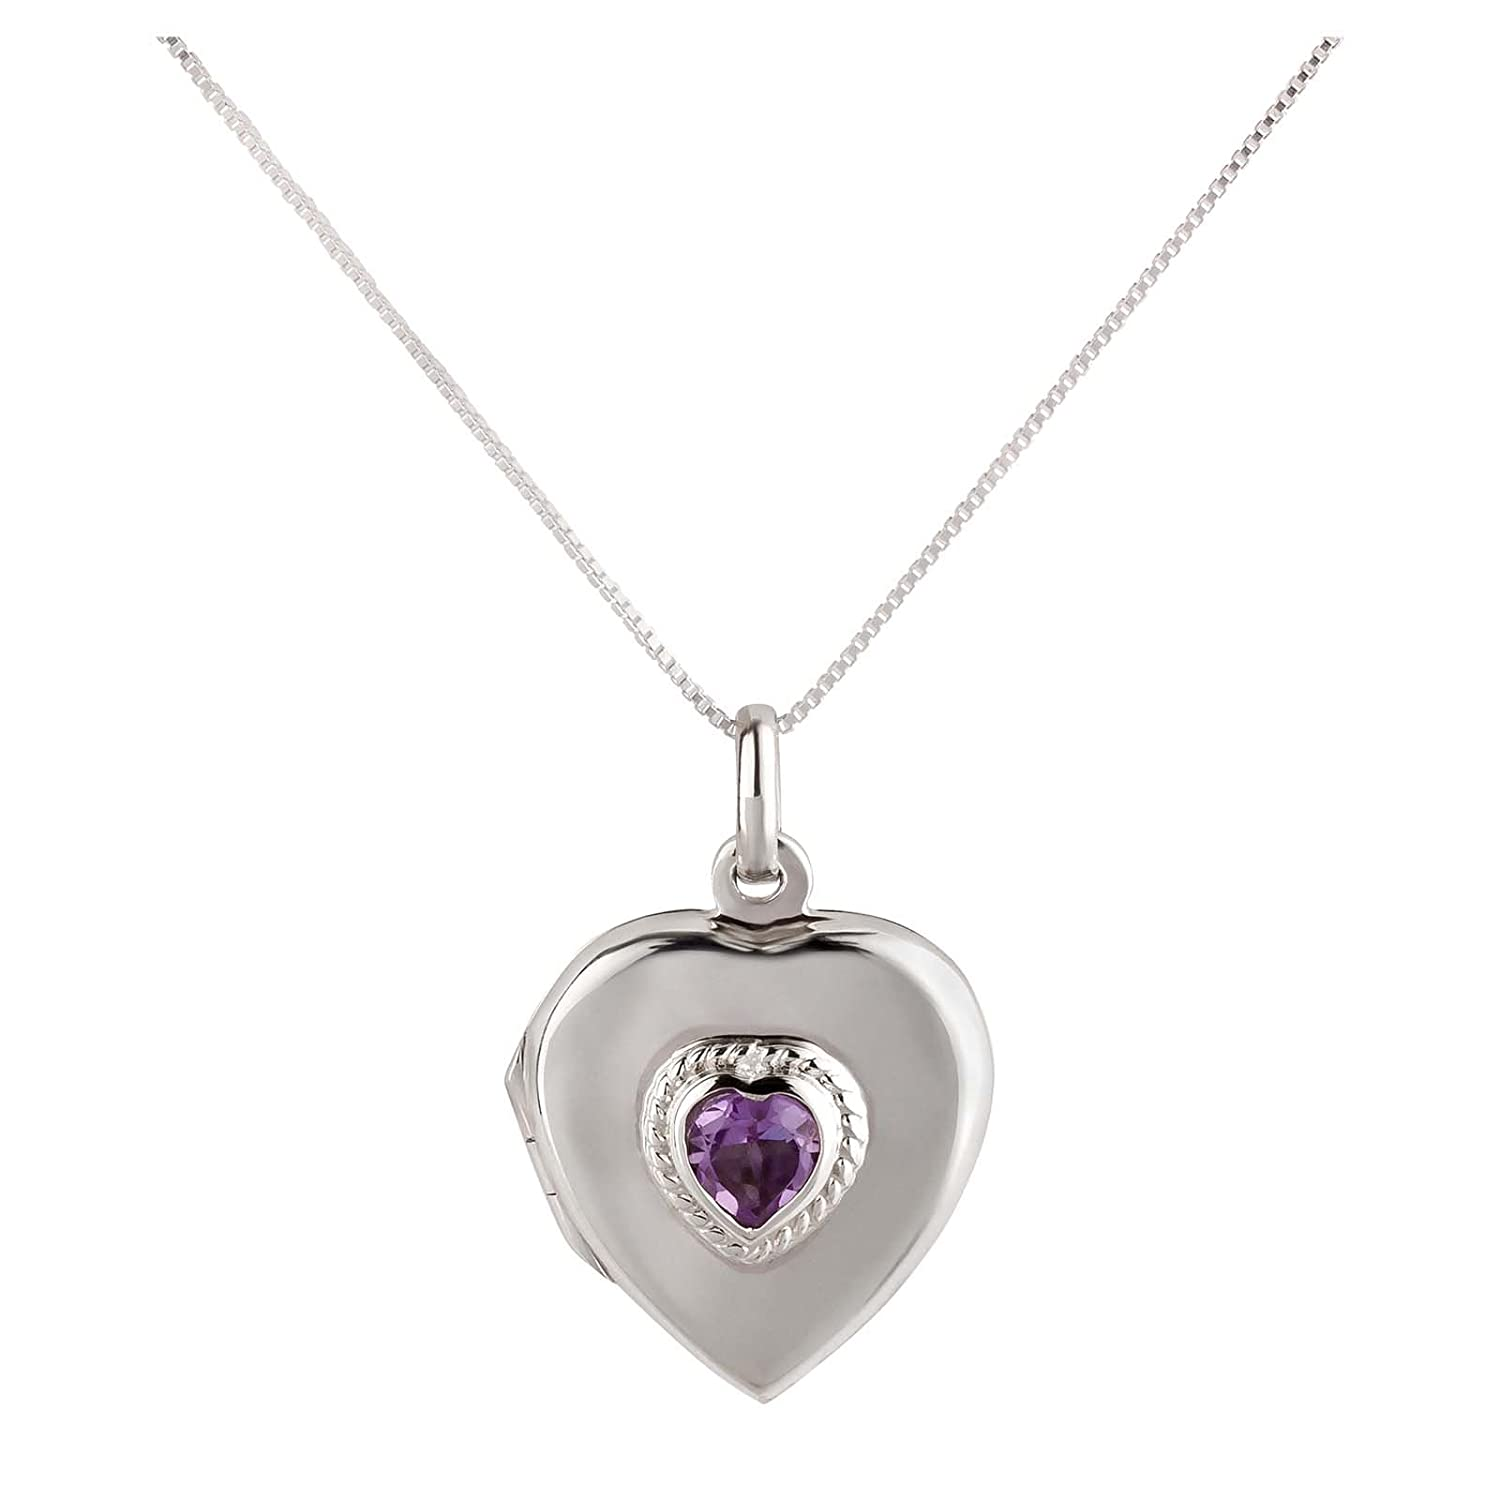 amethyst product locket necklace martha jackson with sterling silver oval by lockets original amythst marthajackson